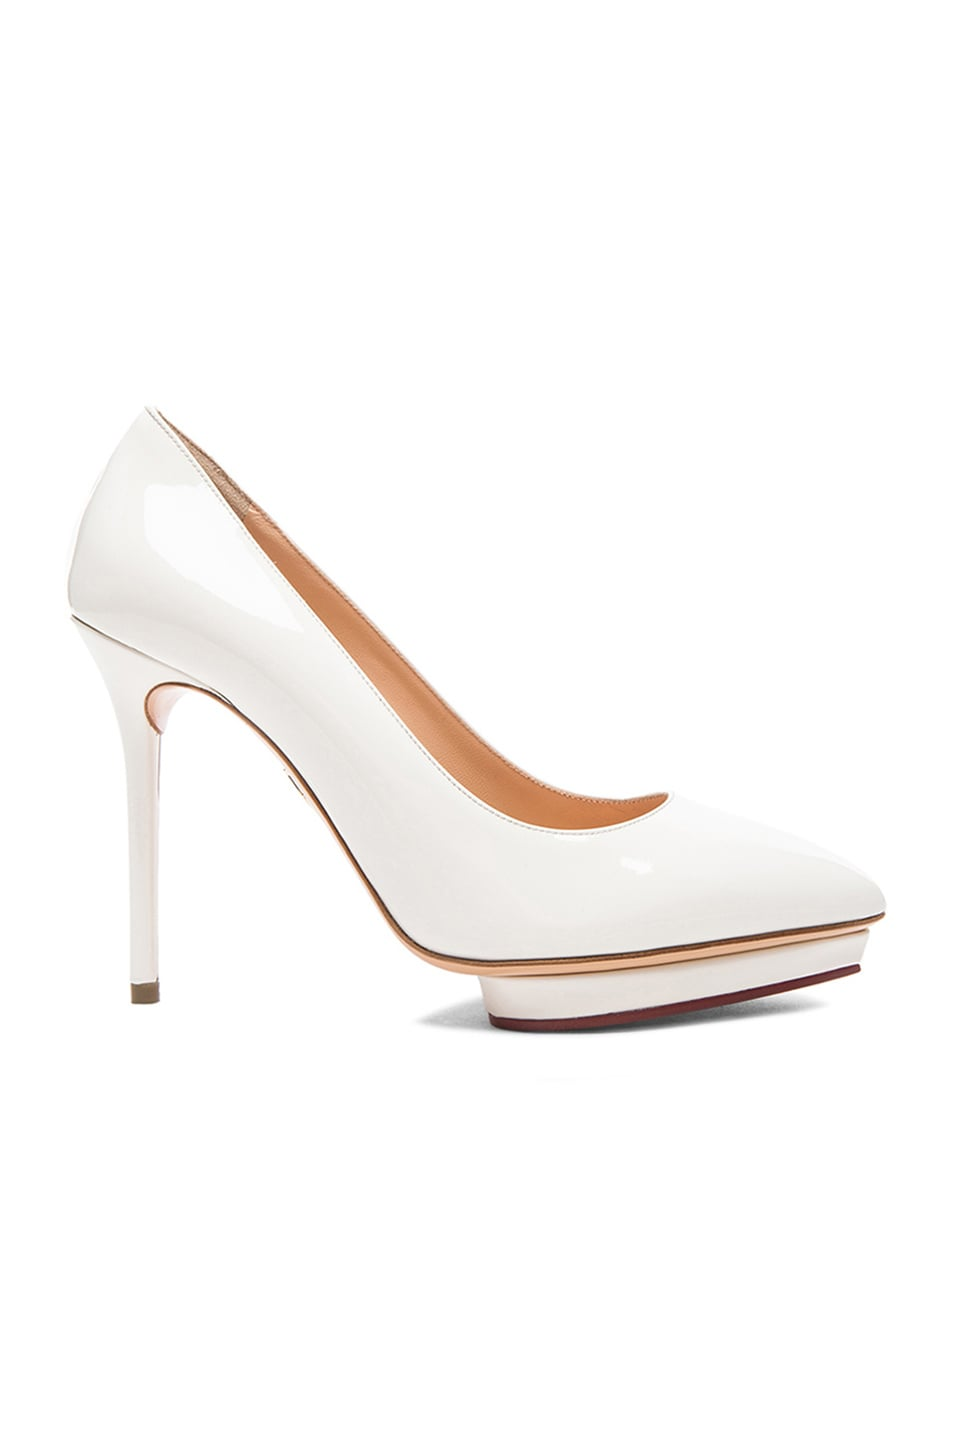 Charlotte Olympia Patent Leather Heels Rqr5nDkWc